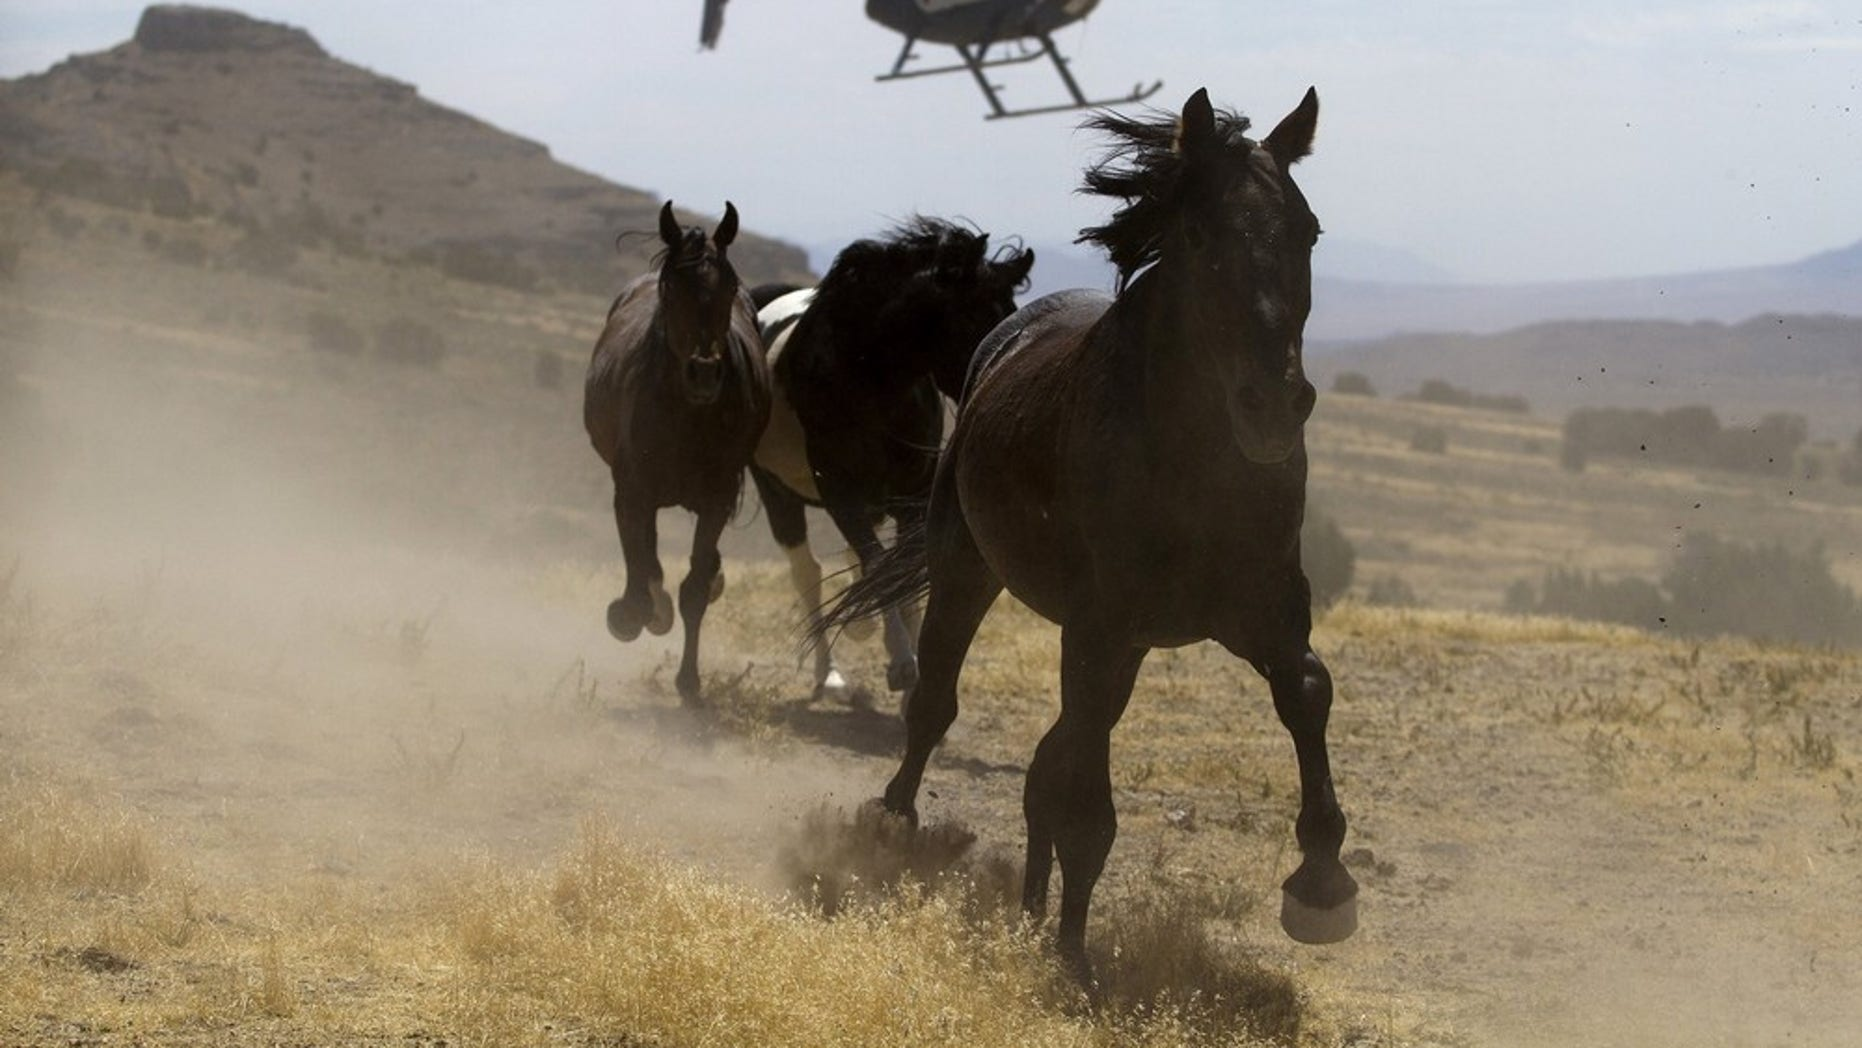 RNPS IMAGES OF THE YEAR 2010 - A helicopter is used by the Bureau of Land Management (BLM) to gather wild horses in the Conger Mountains near Border in Utah September 7, 2010. The BLM plans to round-up approximately 480 wild horses for placement in the BLM's adoption program or long-term pastures. REUTERS/Jim Urquhart (UNITED STATES - Tags: SOCIETY ANIMALS)